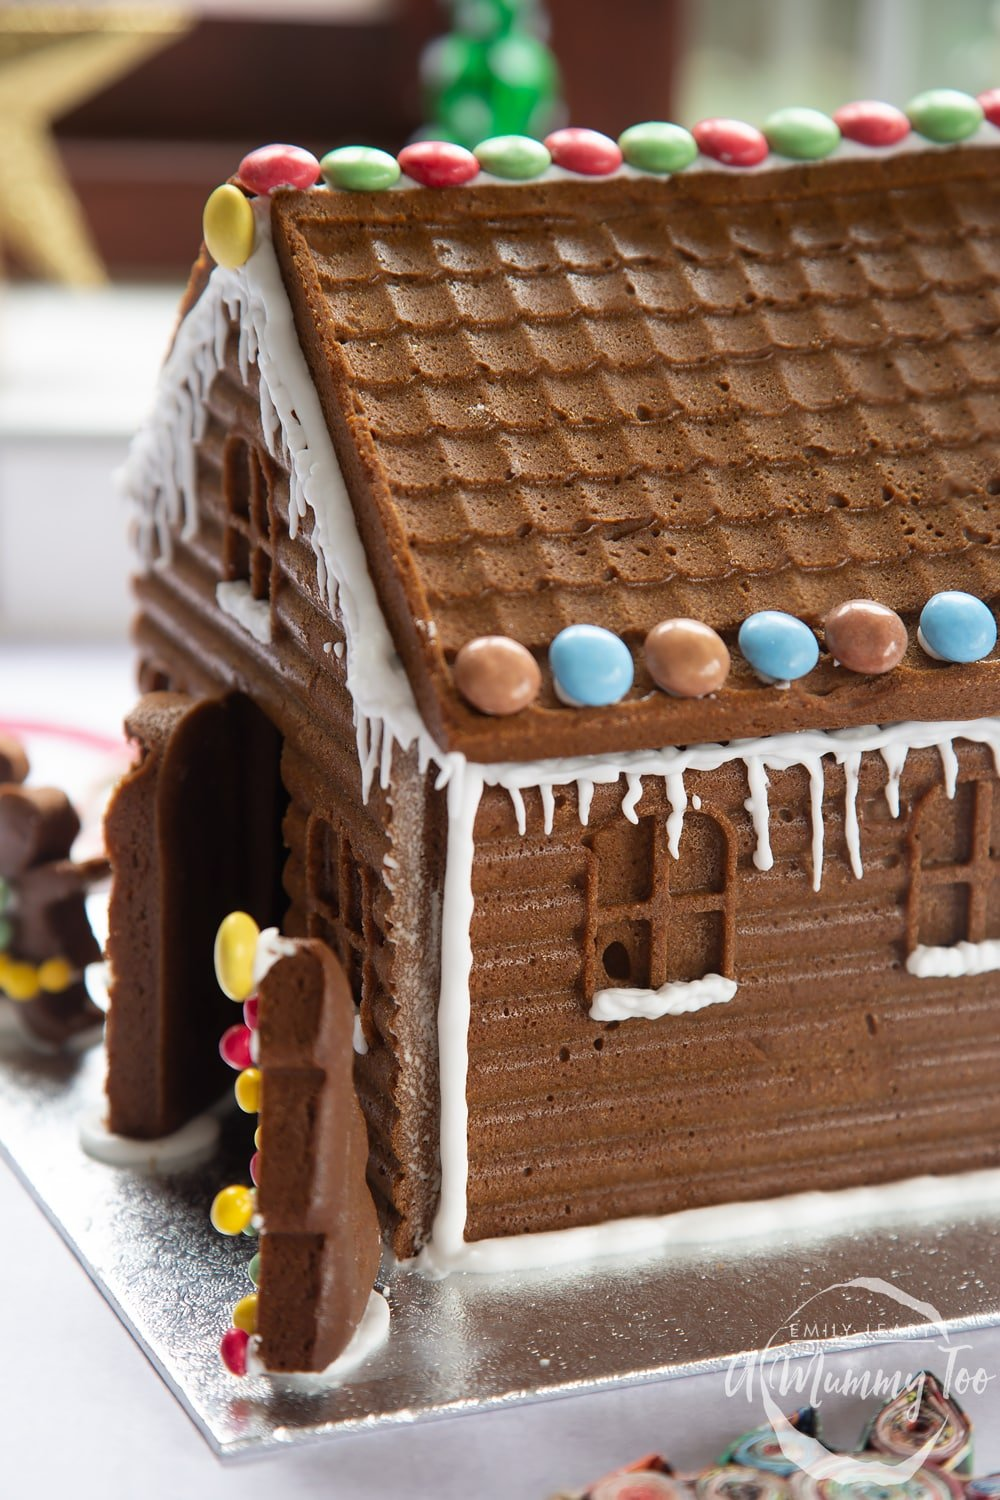 A gingerbread house stands on a silver board. The sills of the windows have been piped with royal icing to resemble snow.